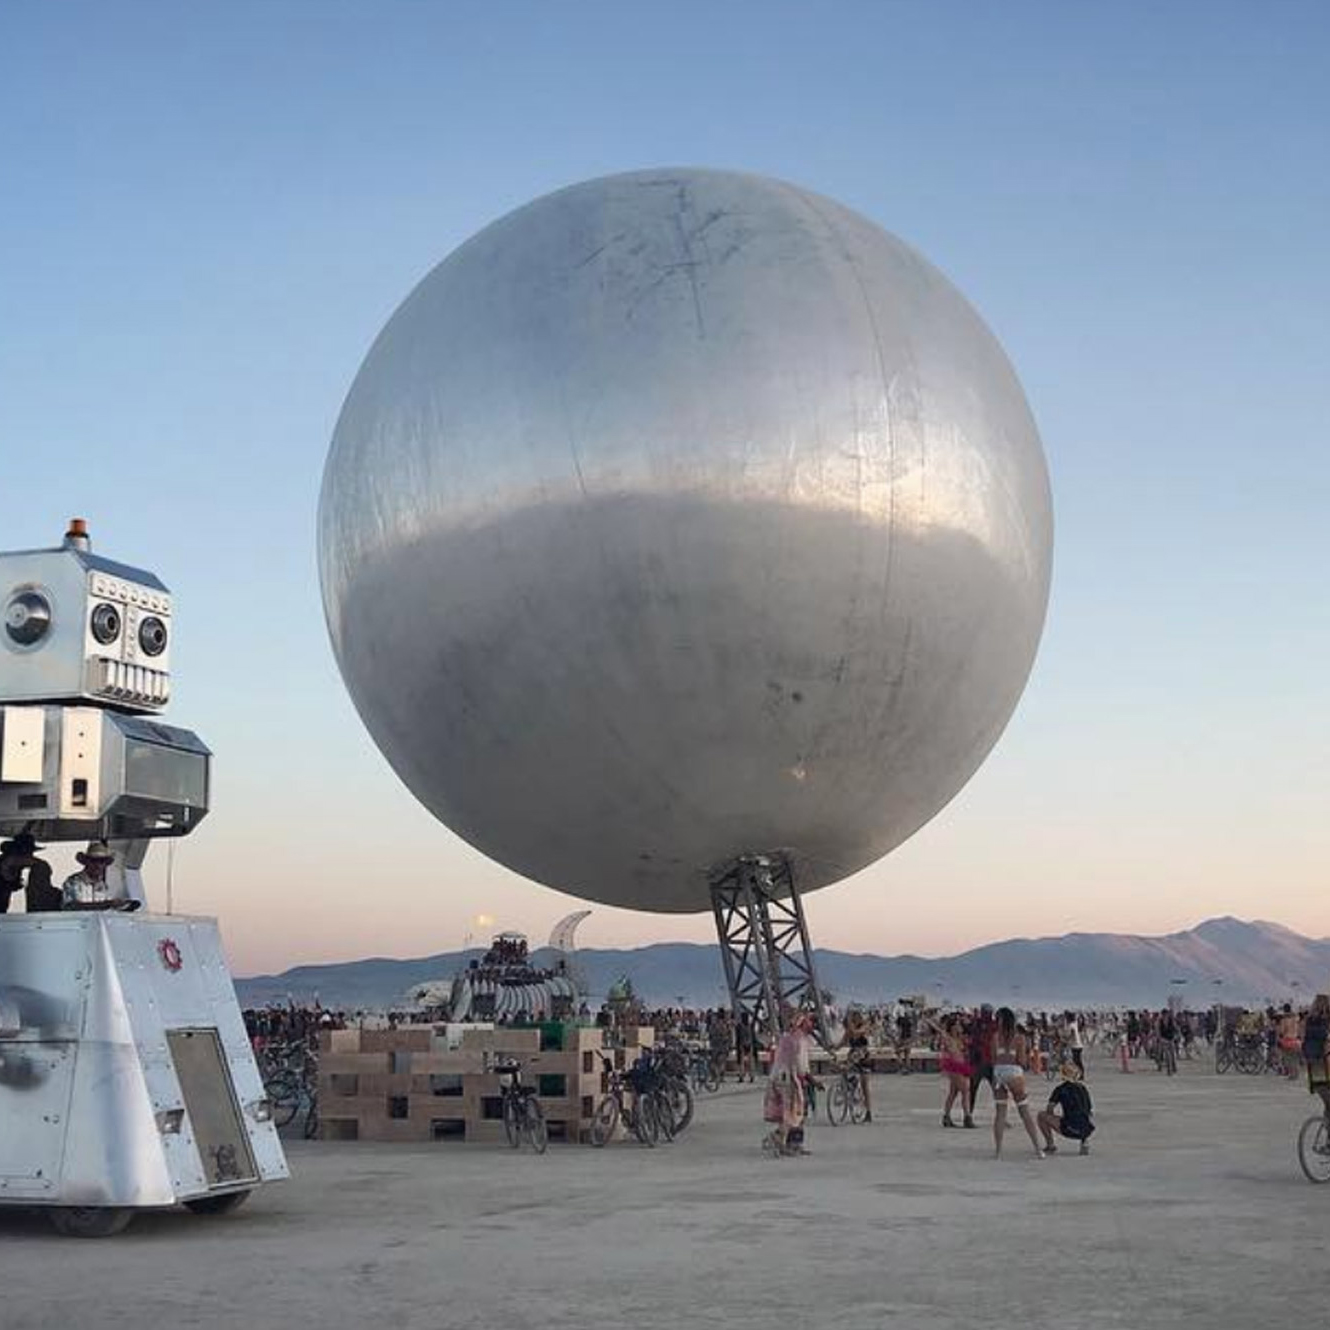 Spherical architecture: Burning Man sphere, by Bjarke Ingels and Jakob Lange